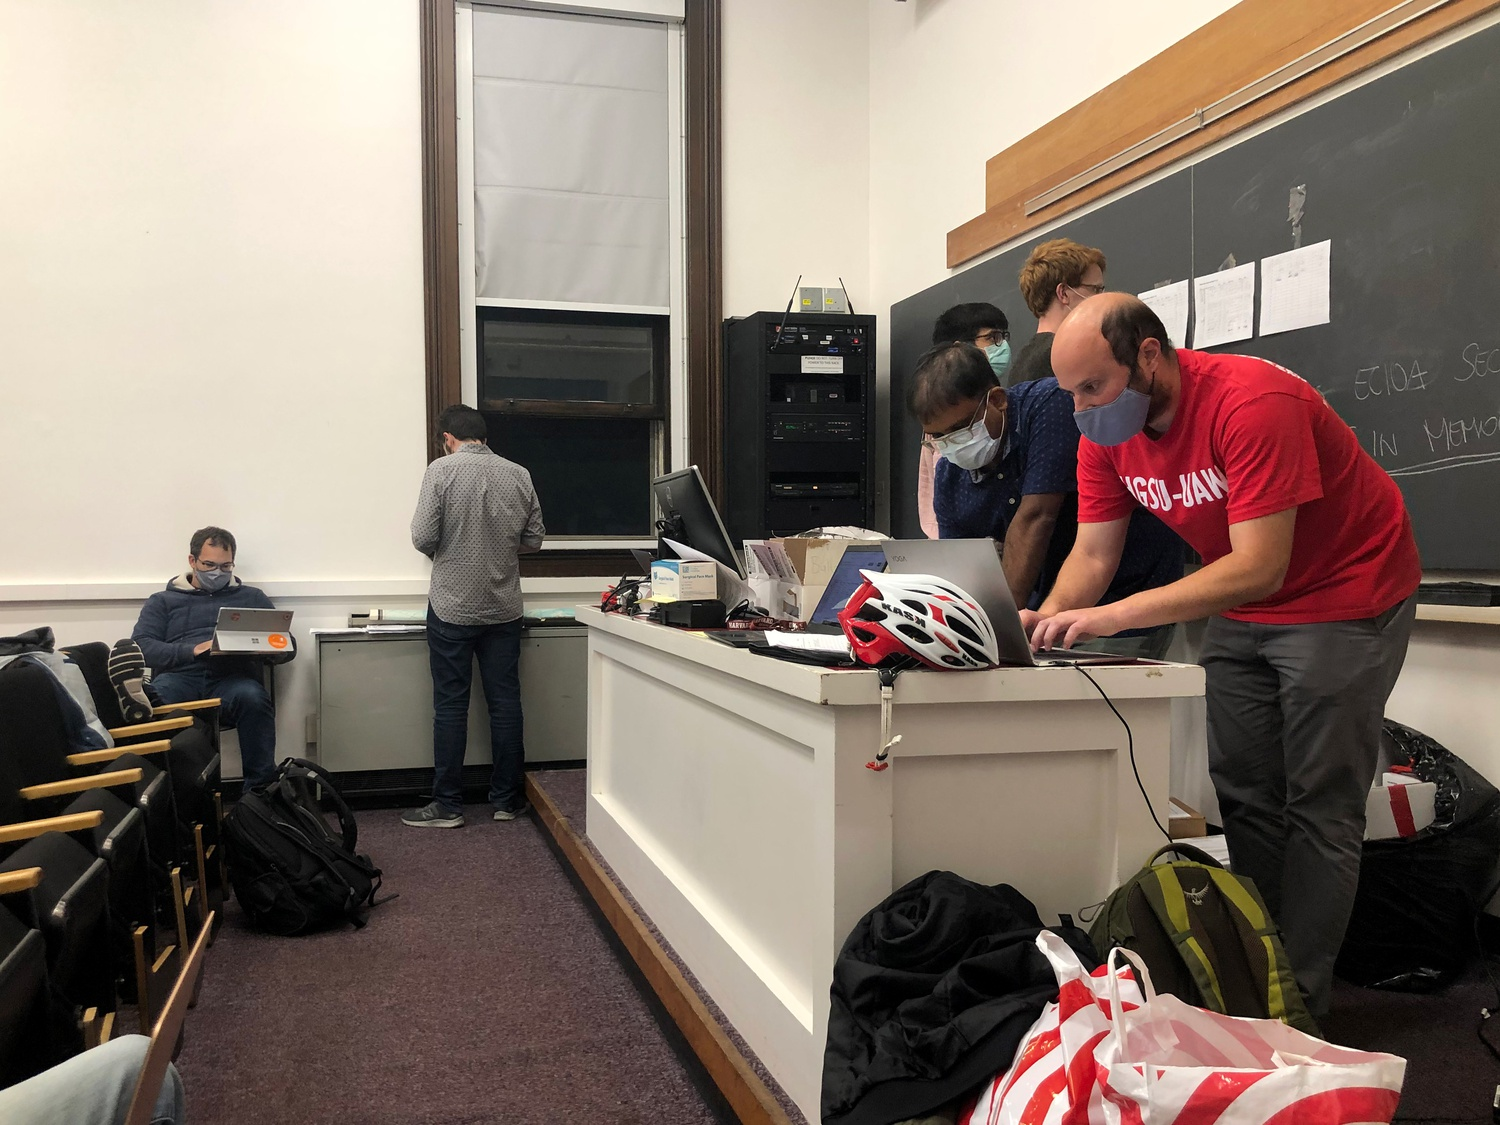 Harvard Graduate Students Union-United Automobile Workers' Elections Committee members counted paper ballots for the union's strike authorization vote Thursday night.